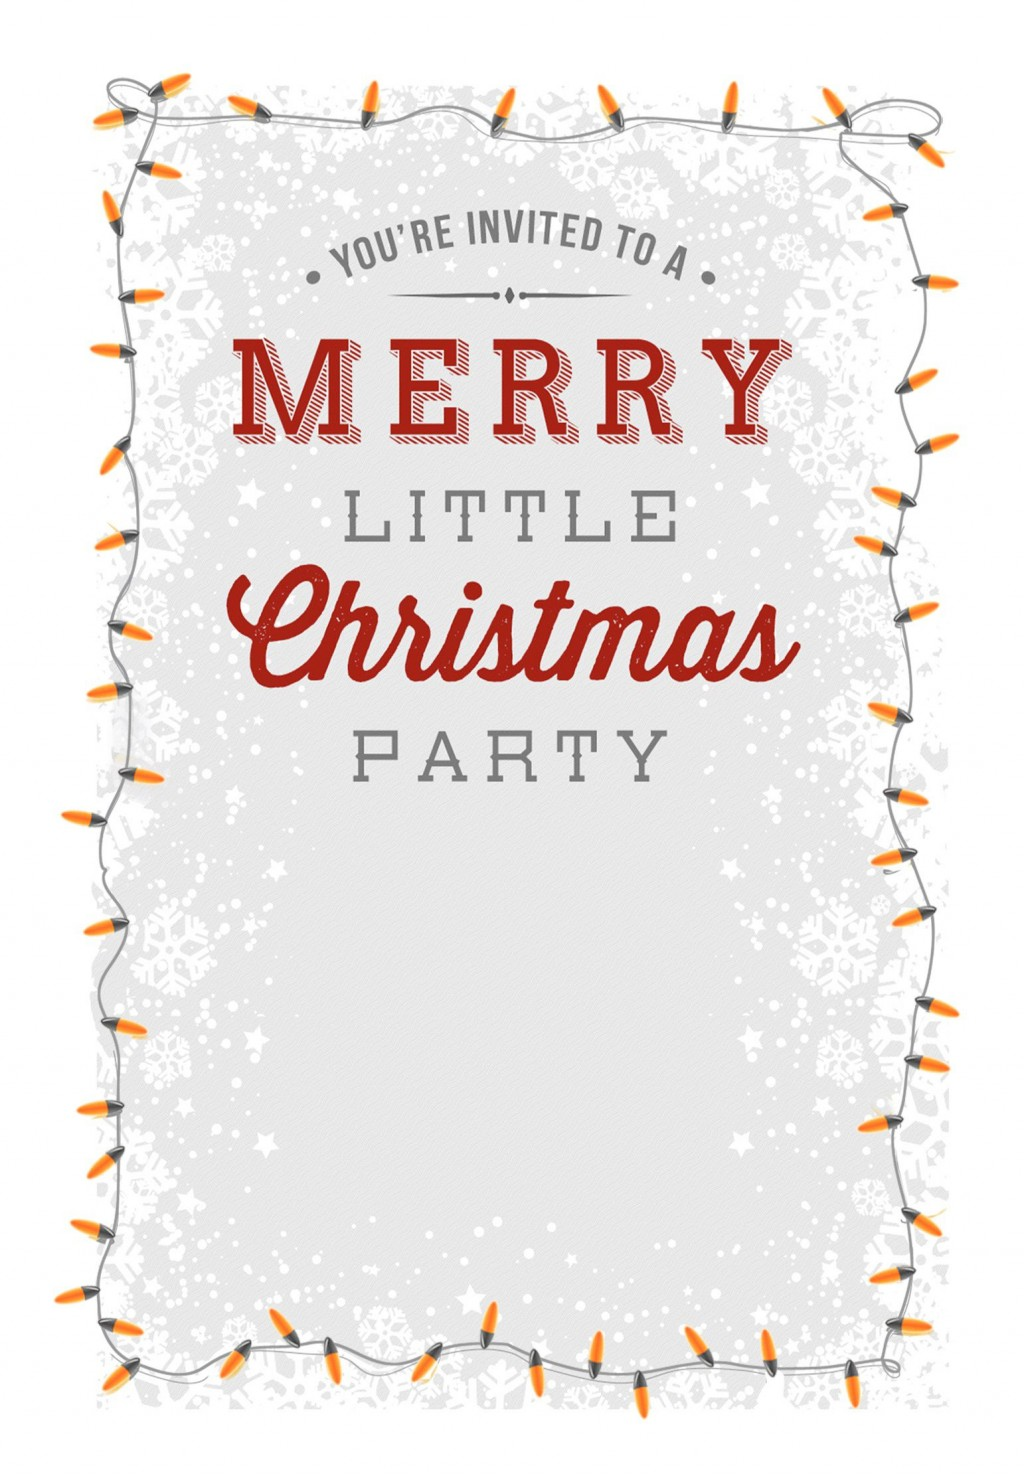 004 Outstanding Free Holiday Invite Template Picture  Templates Party Ticket For EmailLarge